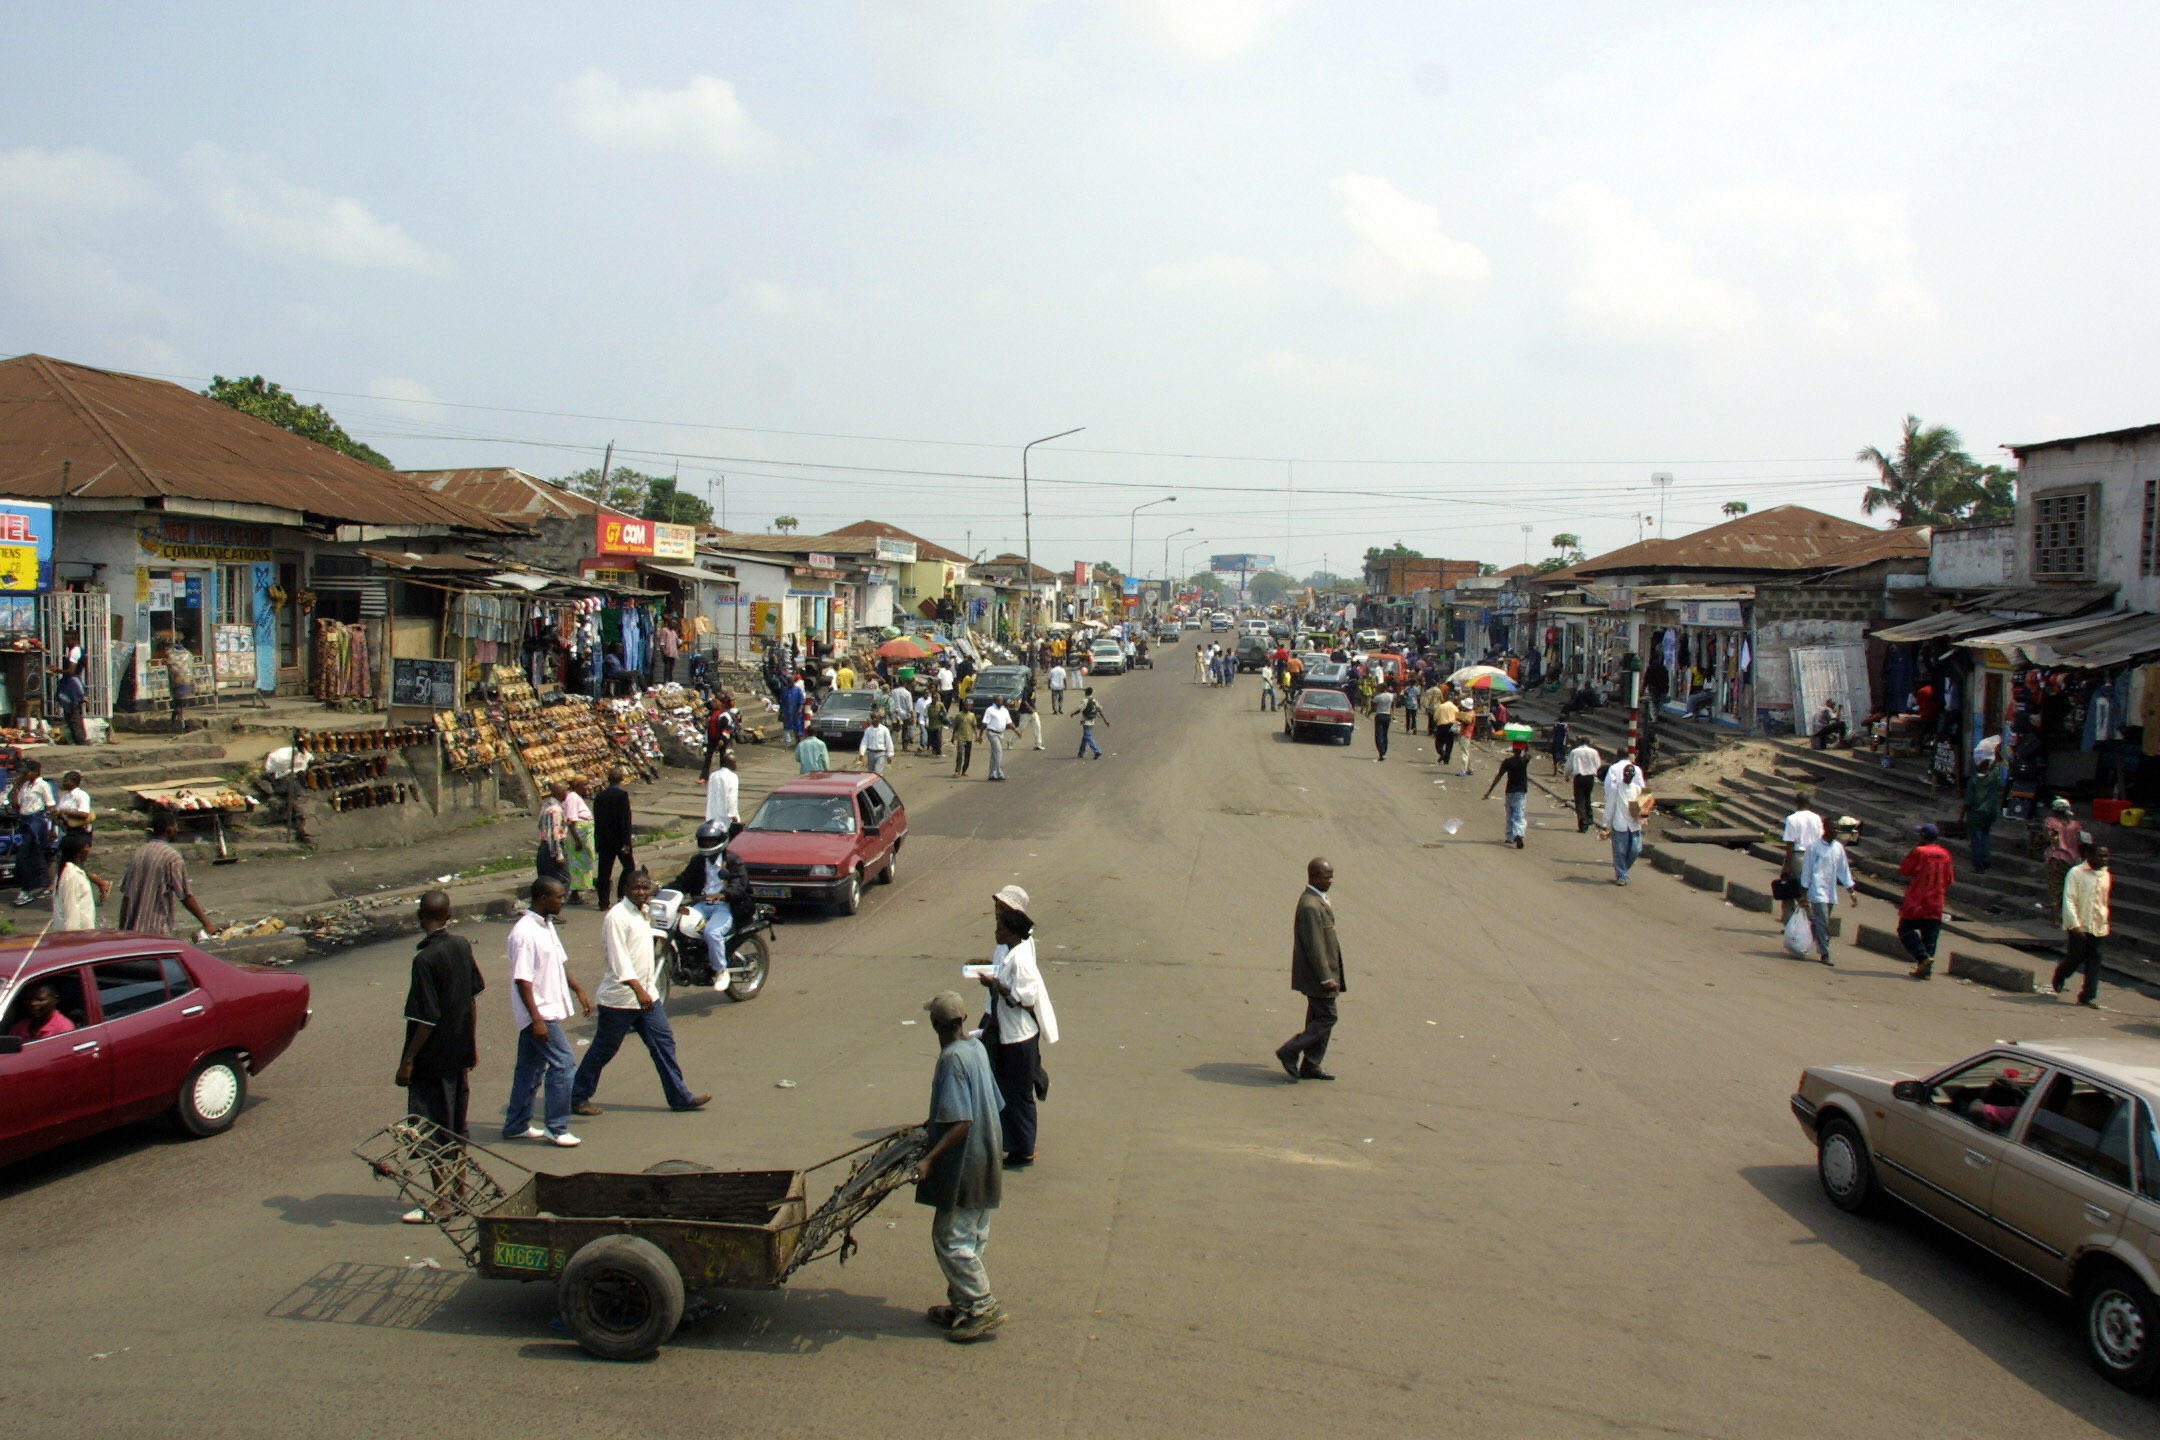 File photo showing a General view of a street in Kinshasa on 16 June, 2004.